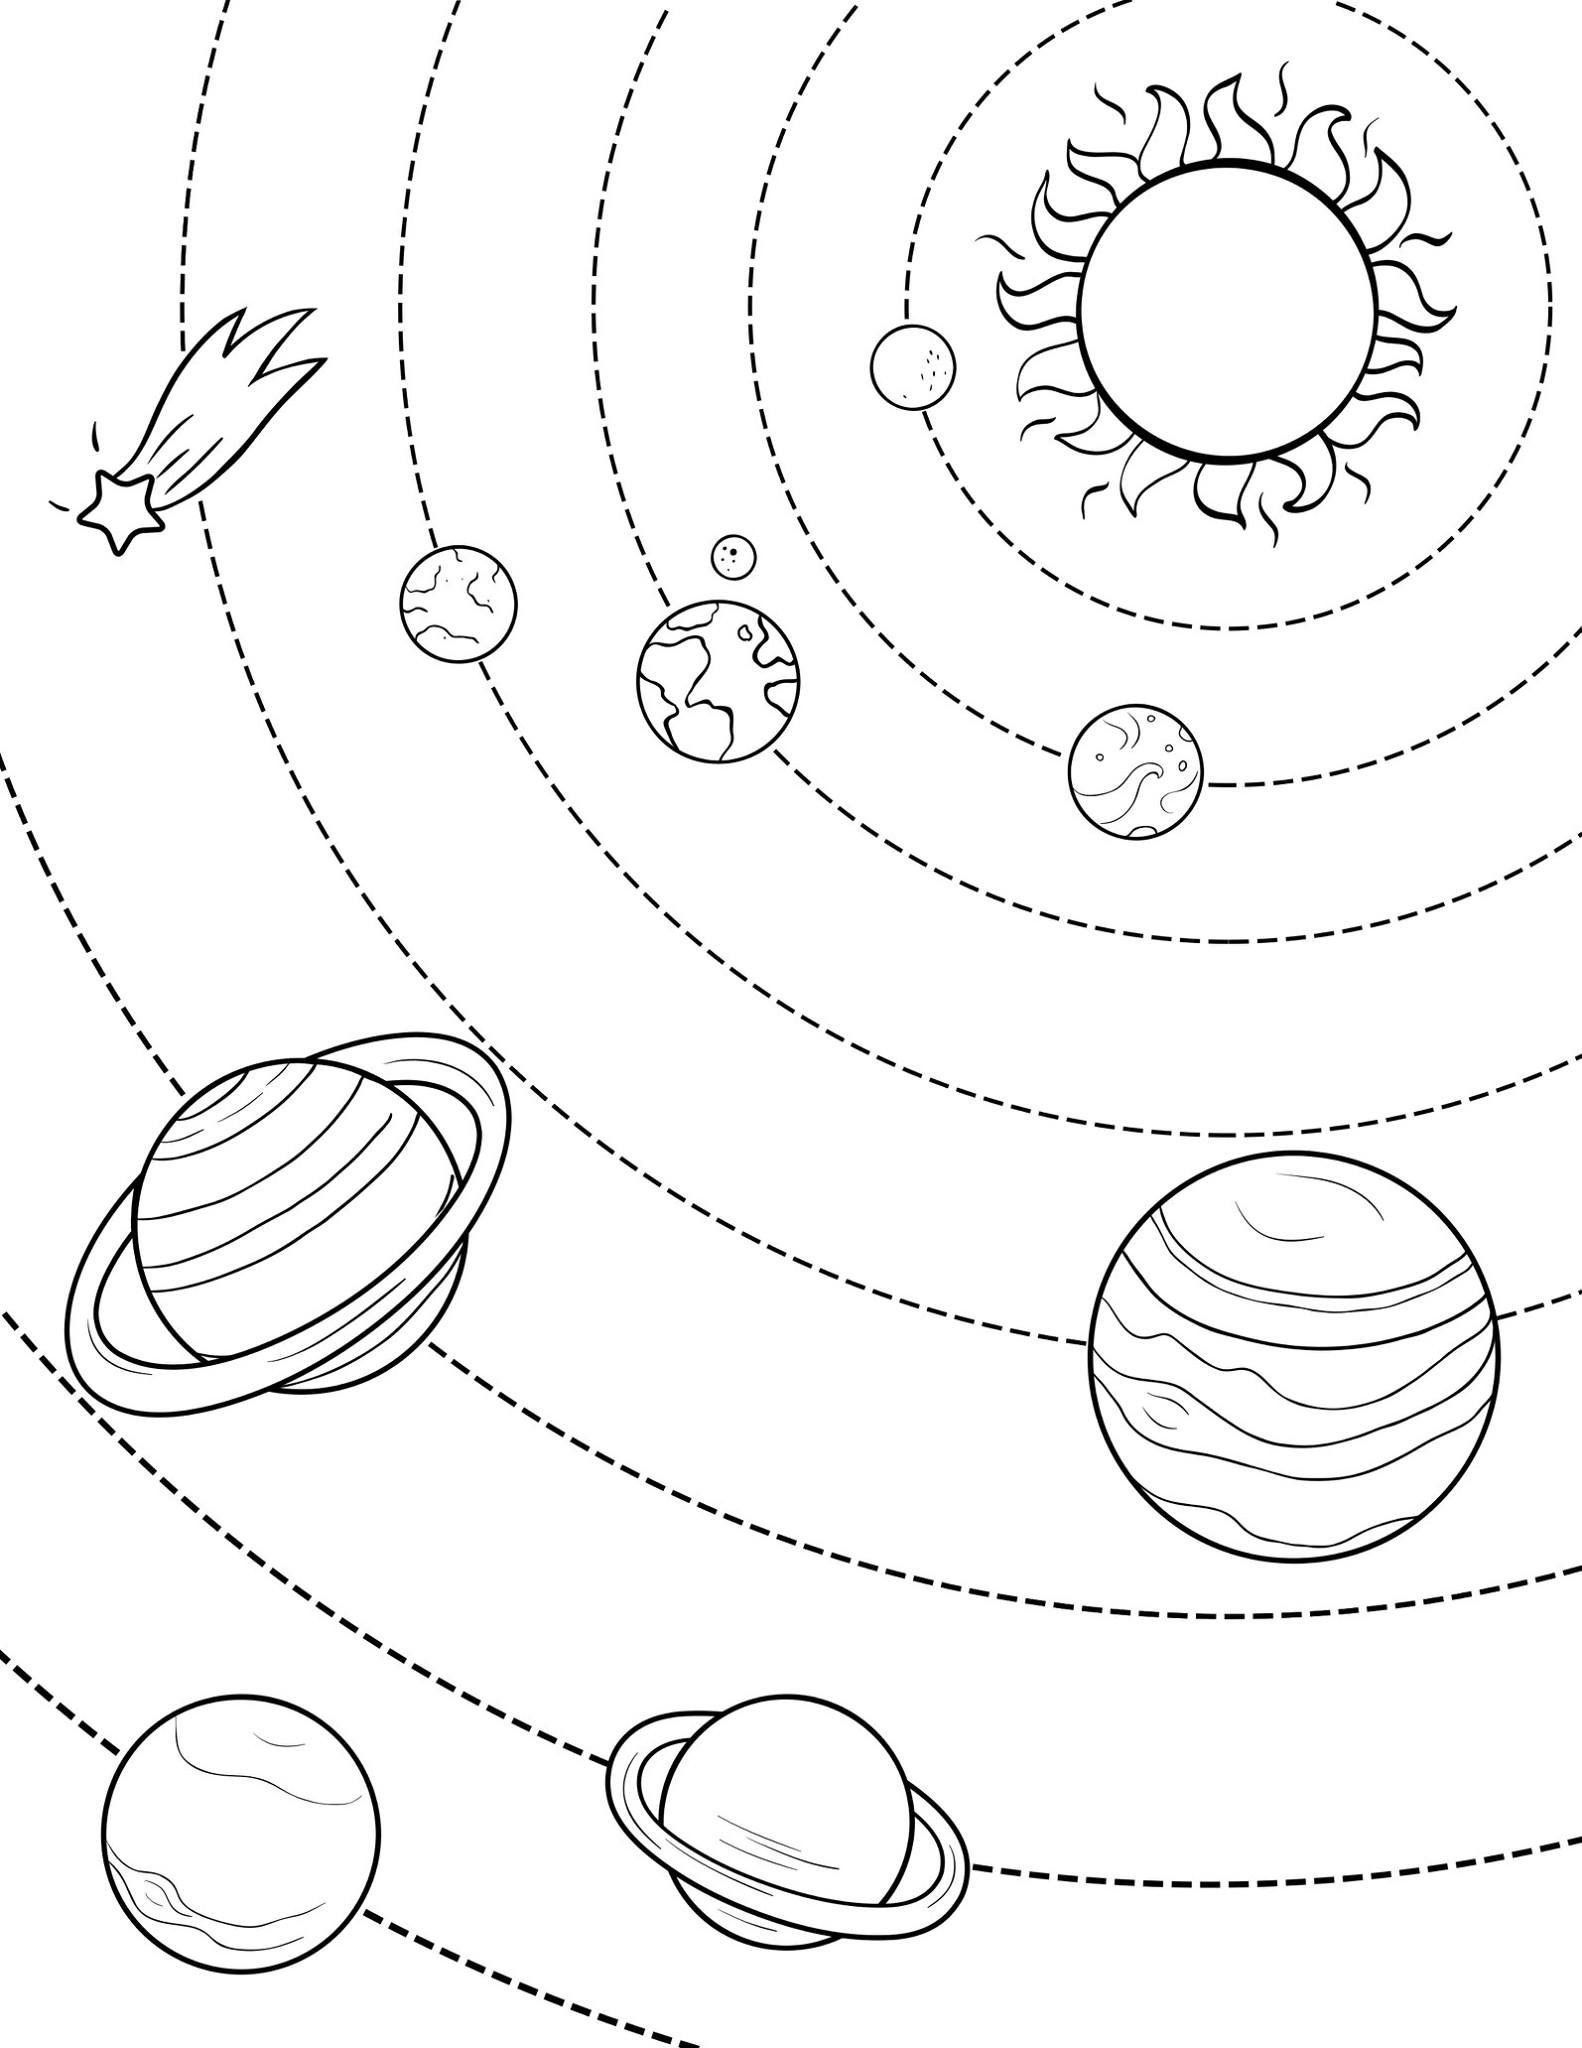 solar system colouring in space solar system planets coloring page for kids in solar system colouring